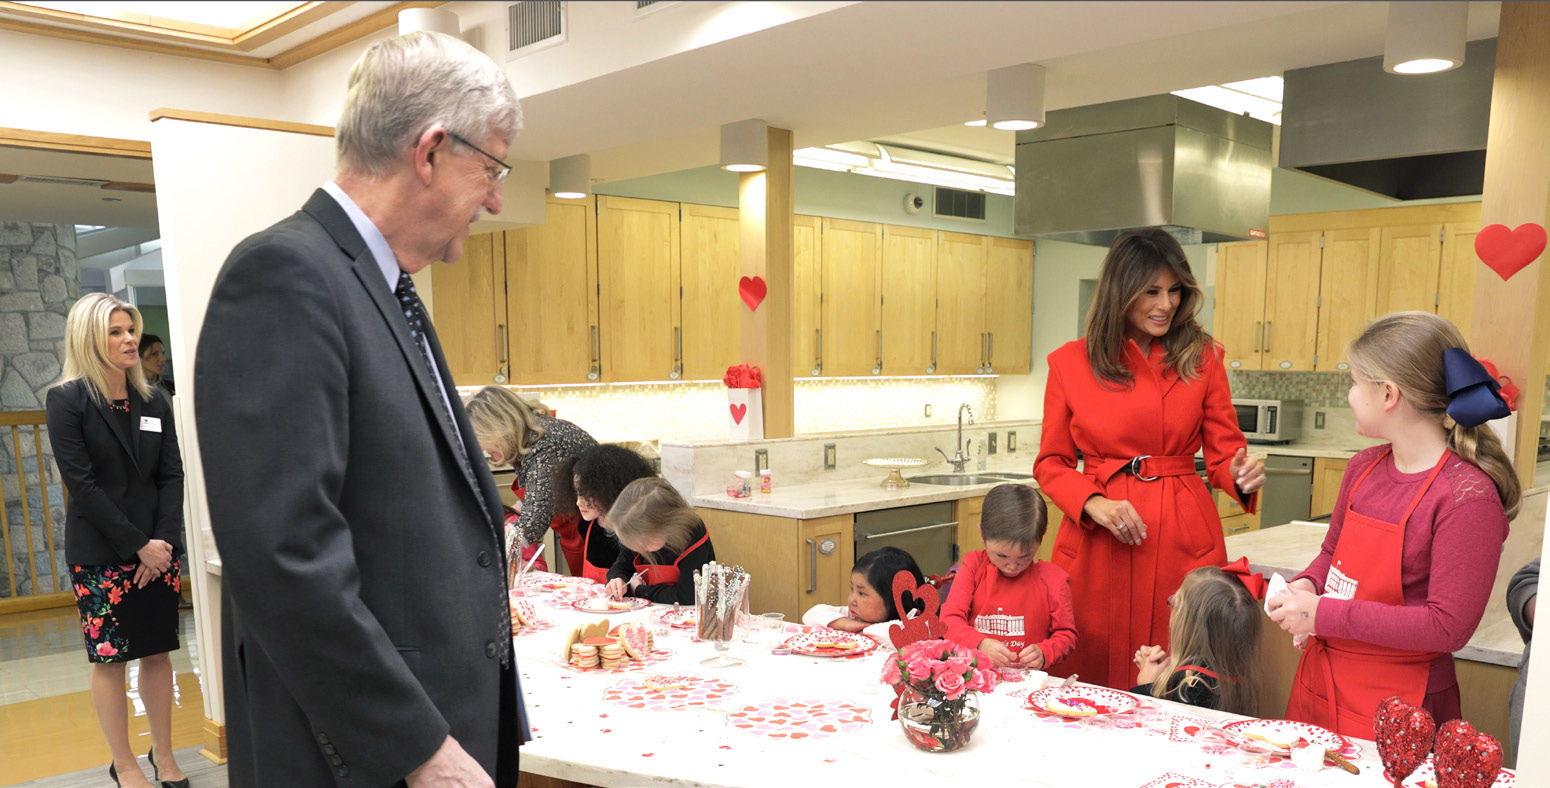 First Lady Sweetens Valentine's Day at Inn